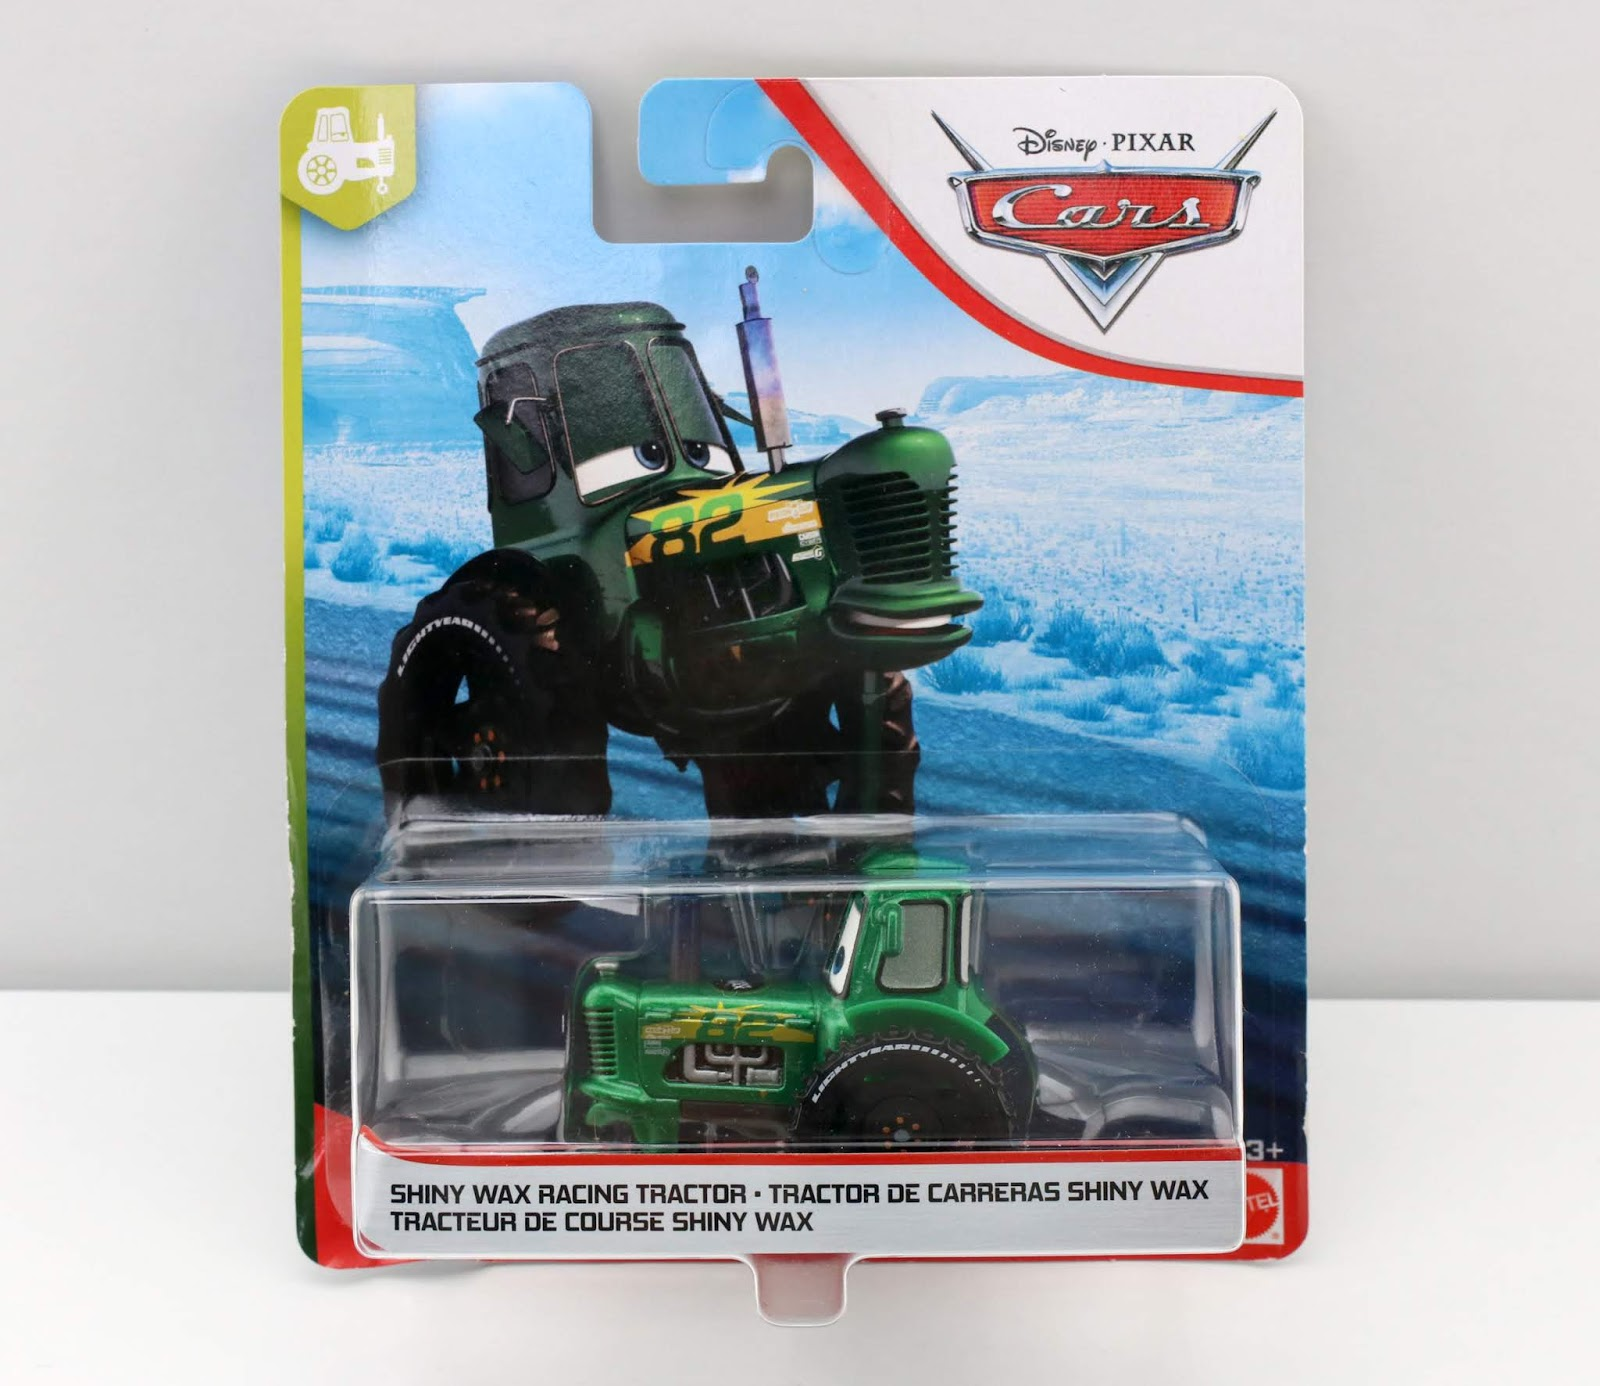 Cars 3 Shiny Wax Racing Tractor diecast review